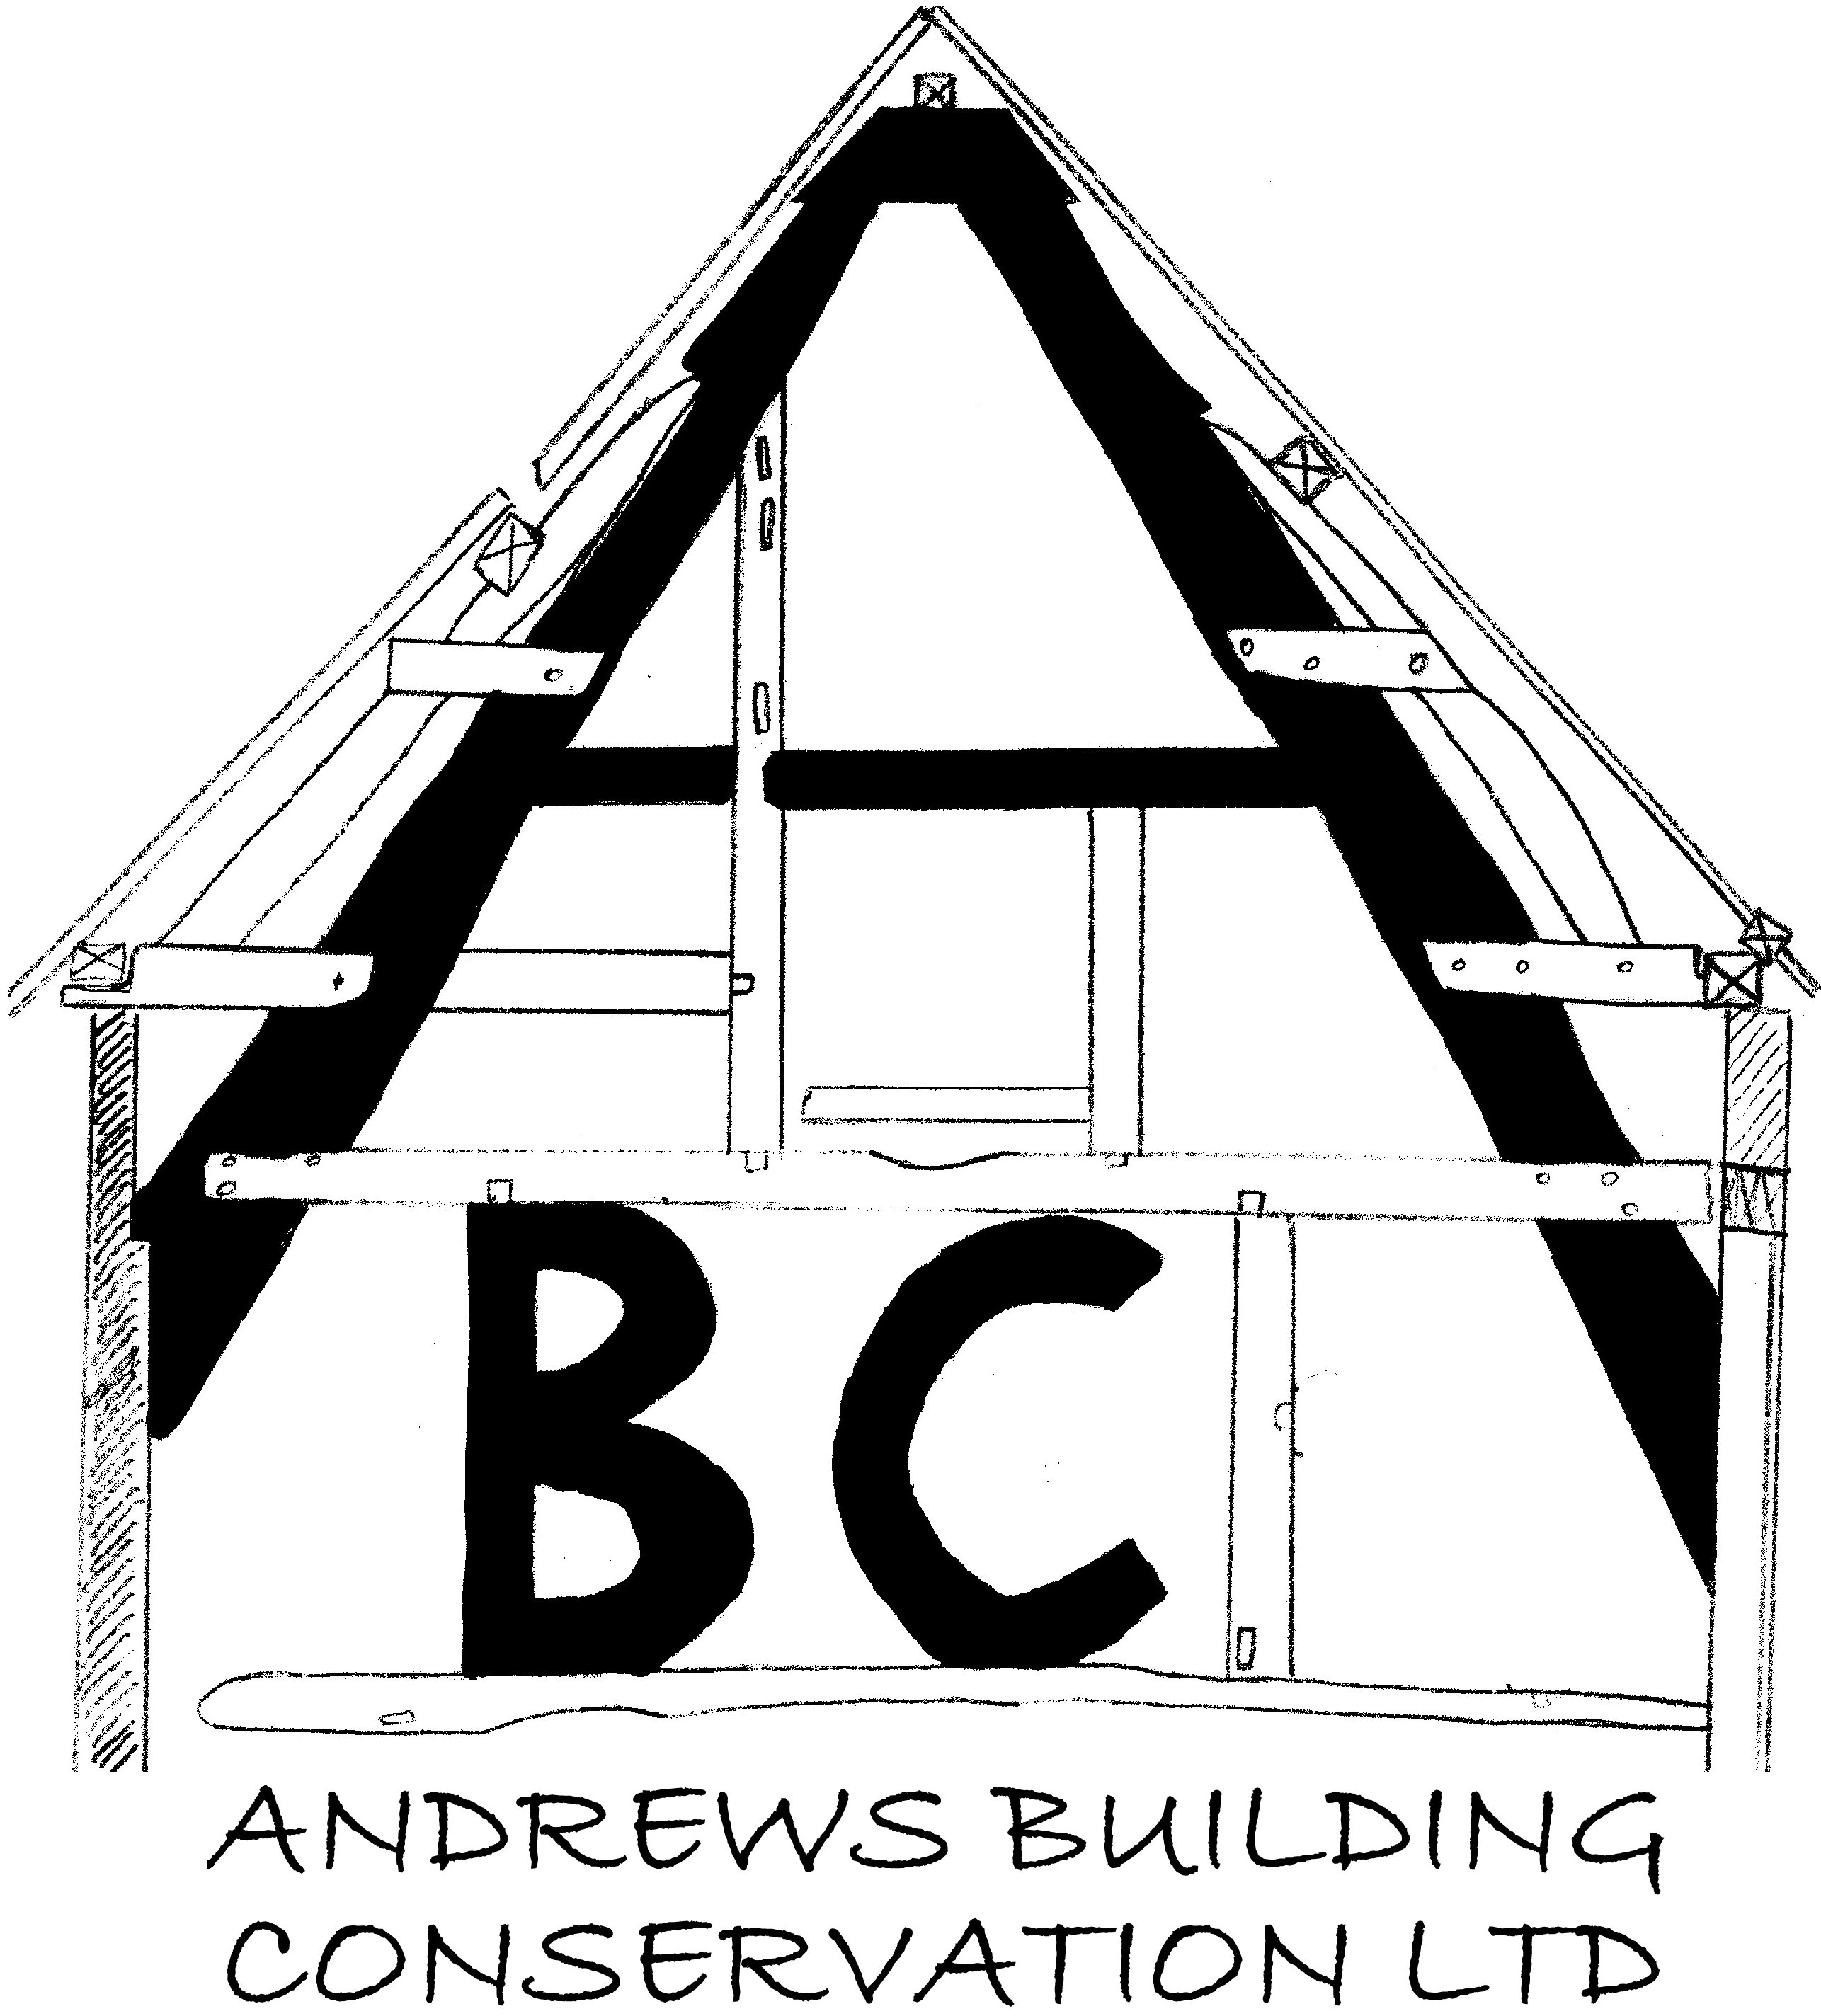 Andrew's Building Conservation